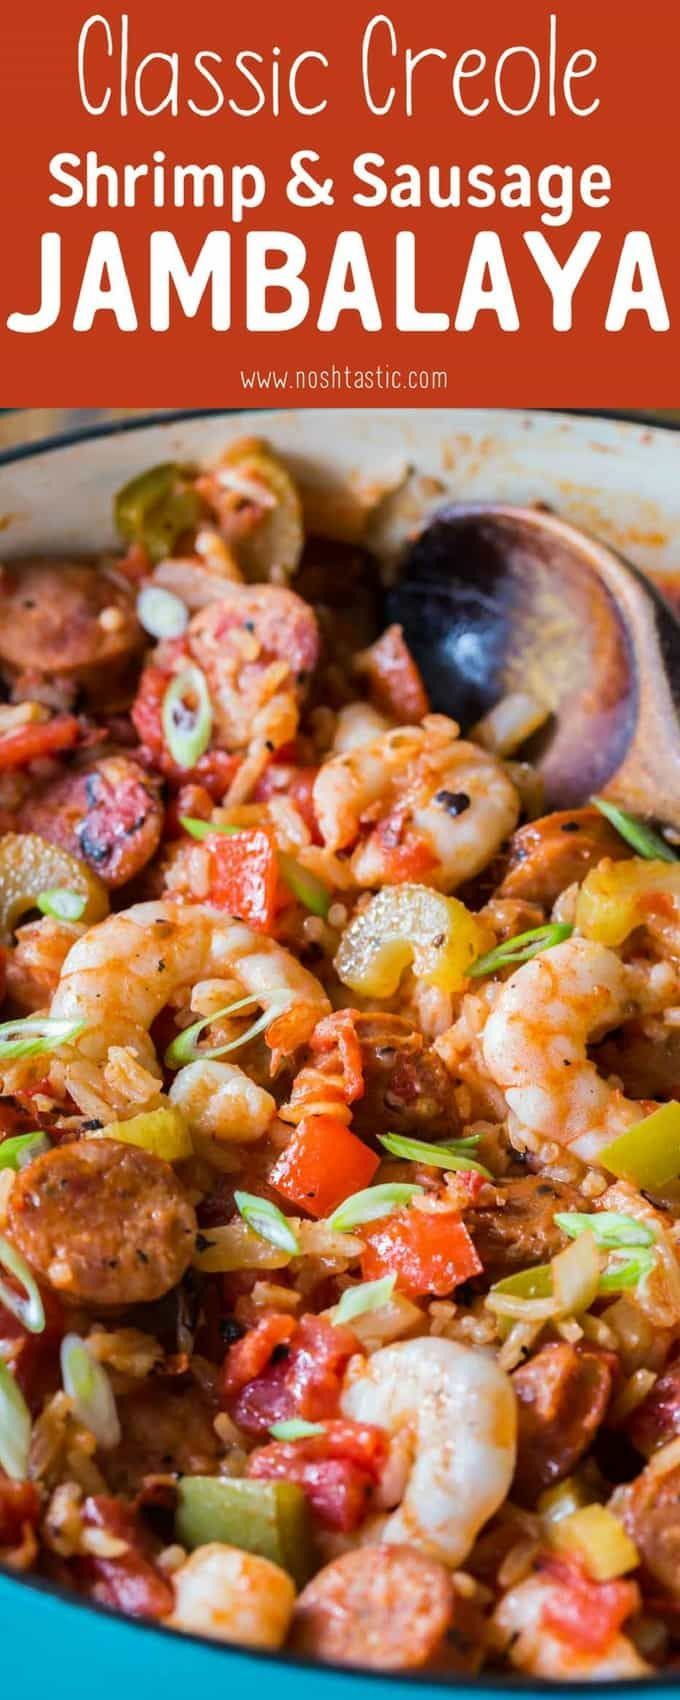 You can make this authentic homemade Creole Jambalaya Recipe really quickly on your stovetop, it's flavor packed with bell peppers, celery, onions, spices, chicken and shrimp, you'll love it! This recipe is healthy, made from scratch, gluten free and dairy free too.